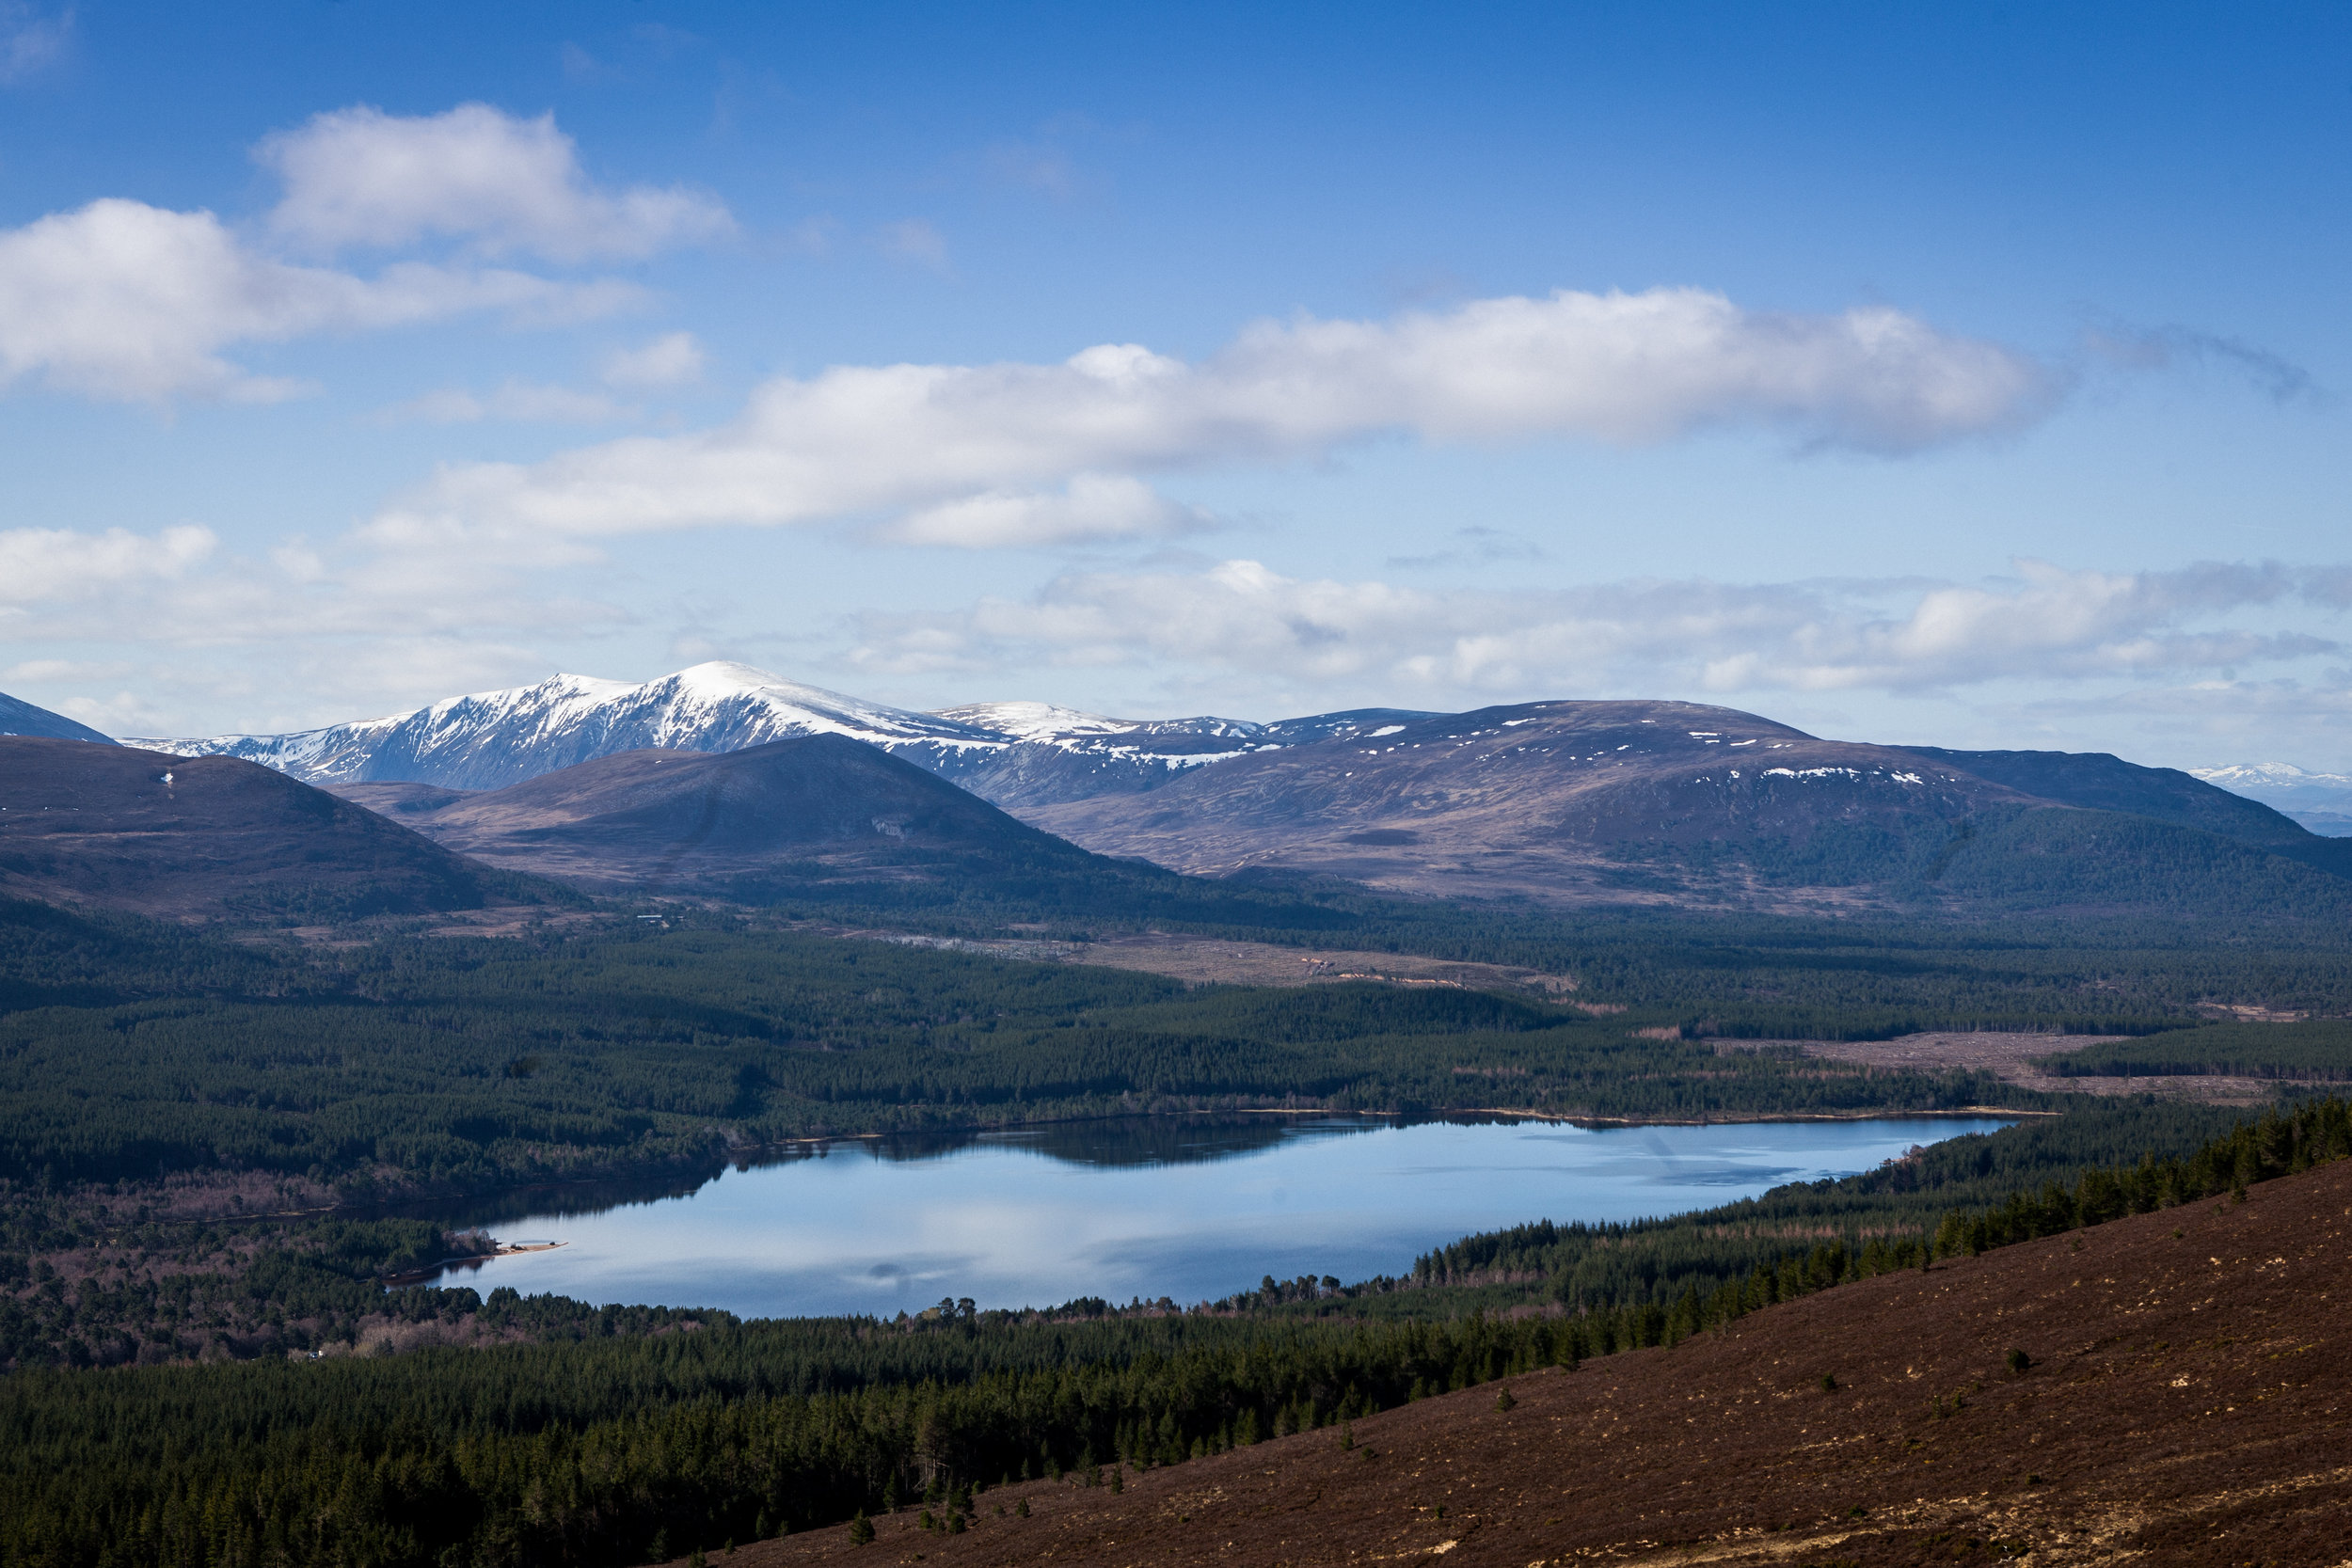 03-29-2019_Lochran-and-Light-436.jpg